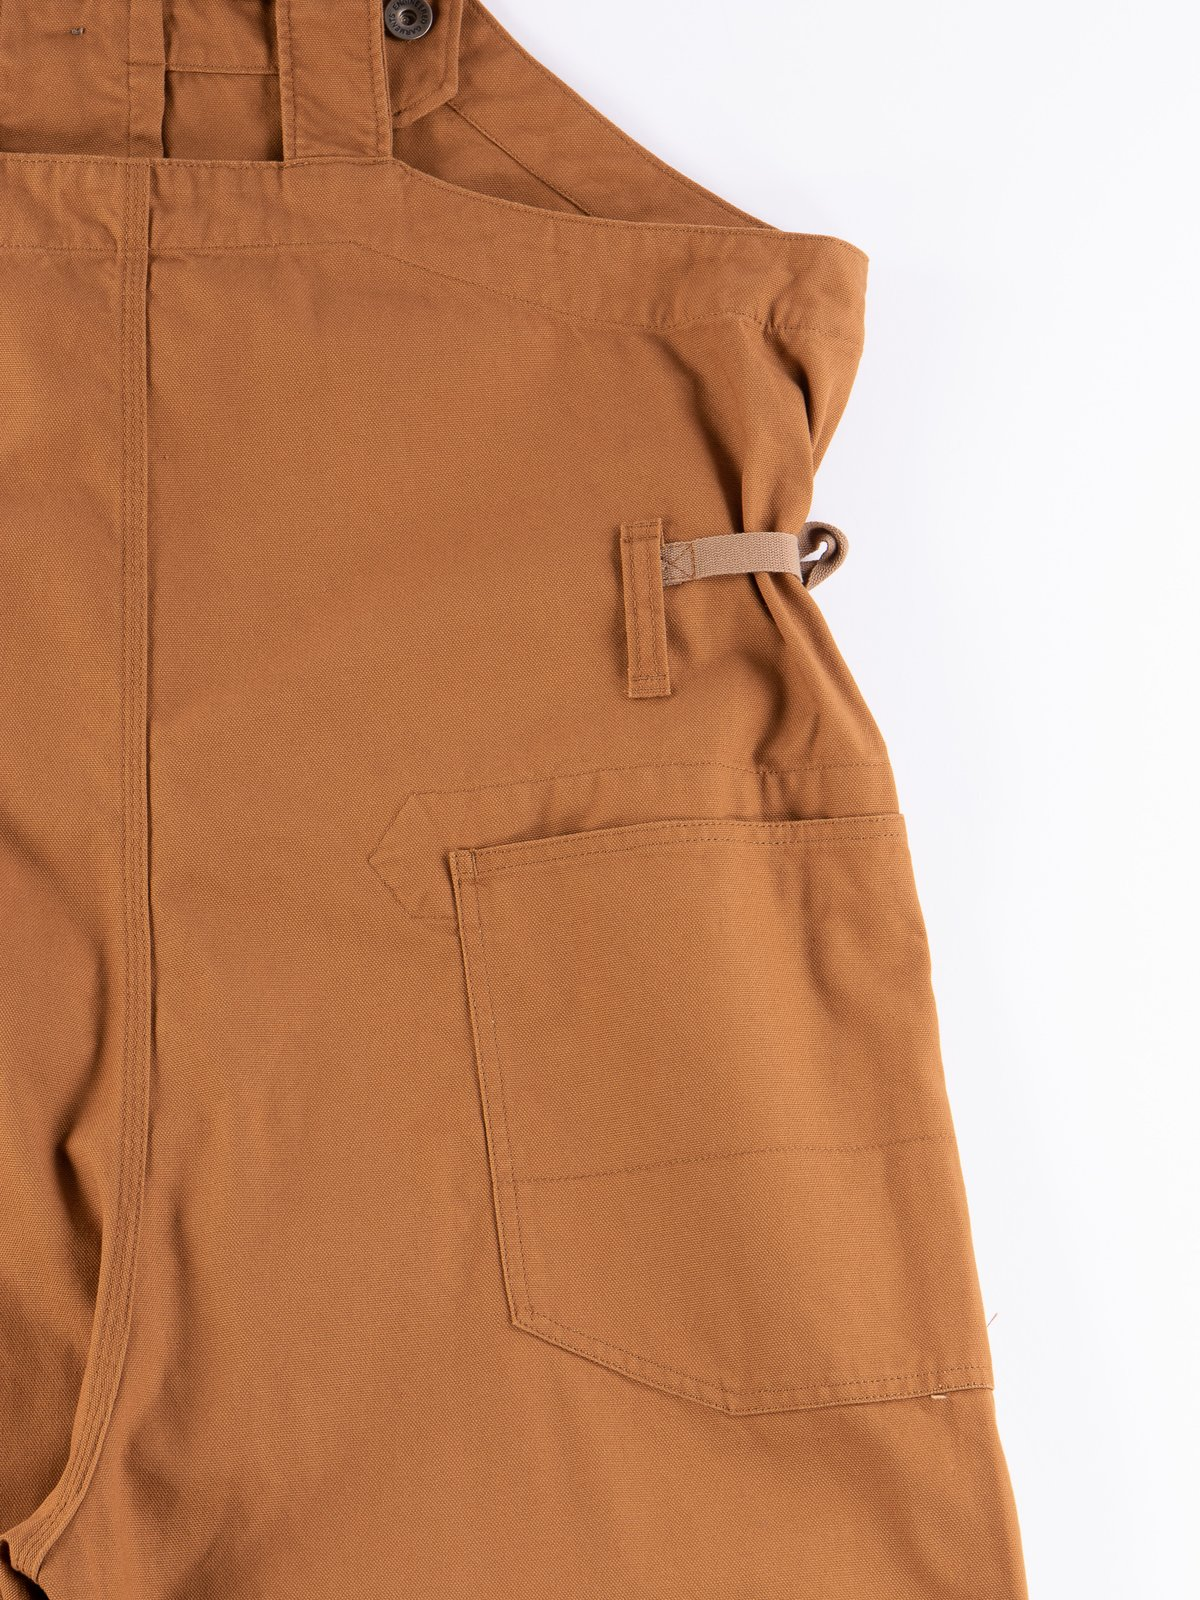 Brown 12oz Duck Canvas Waders - Image 8